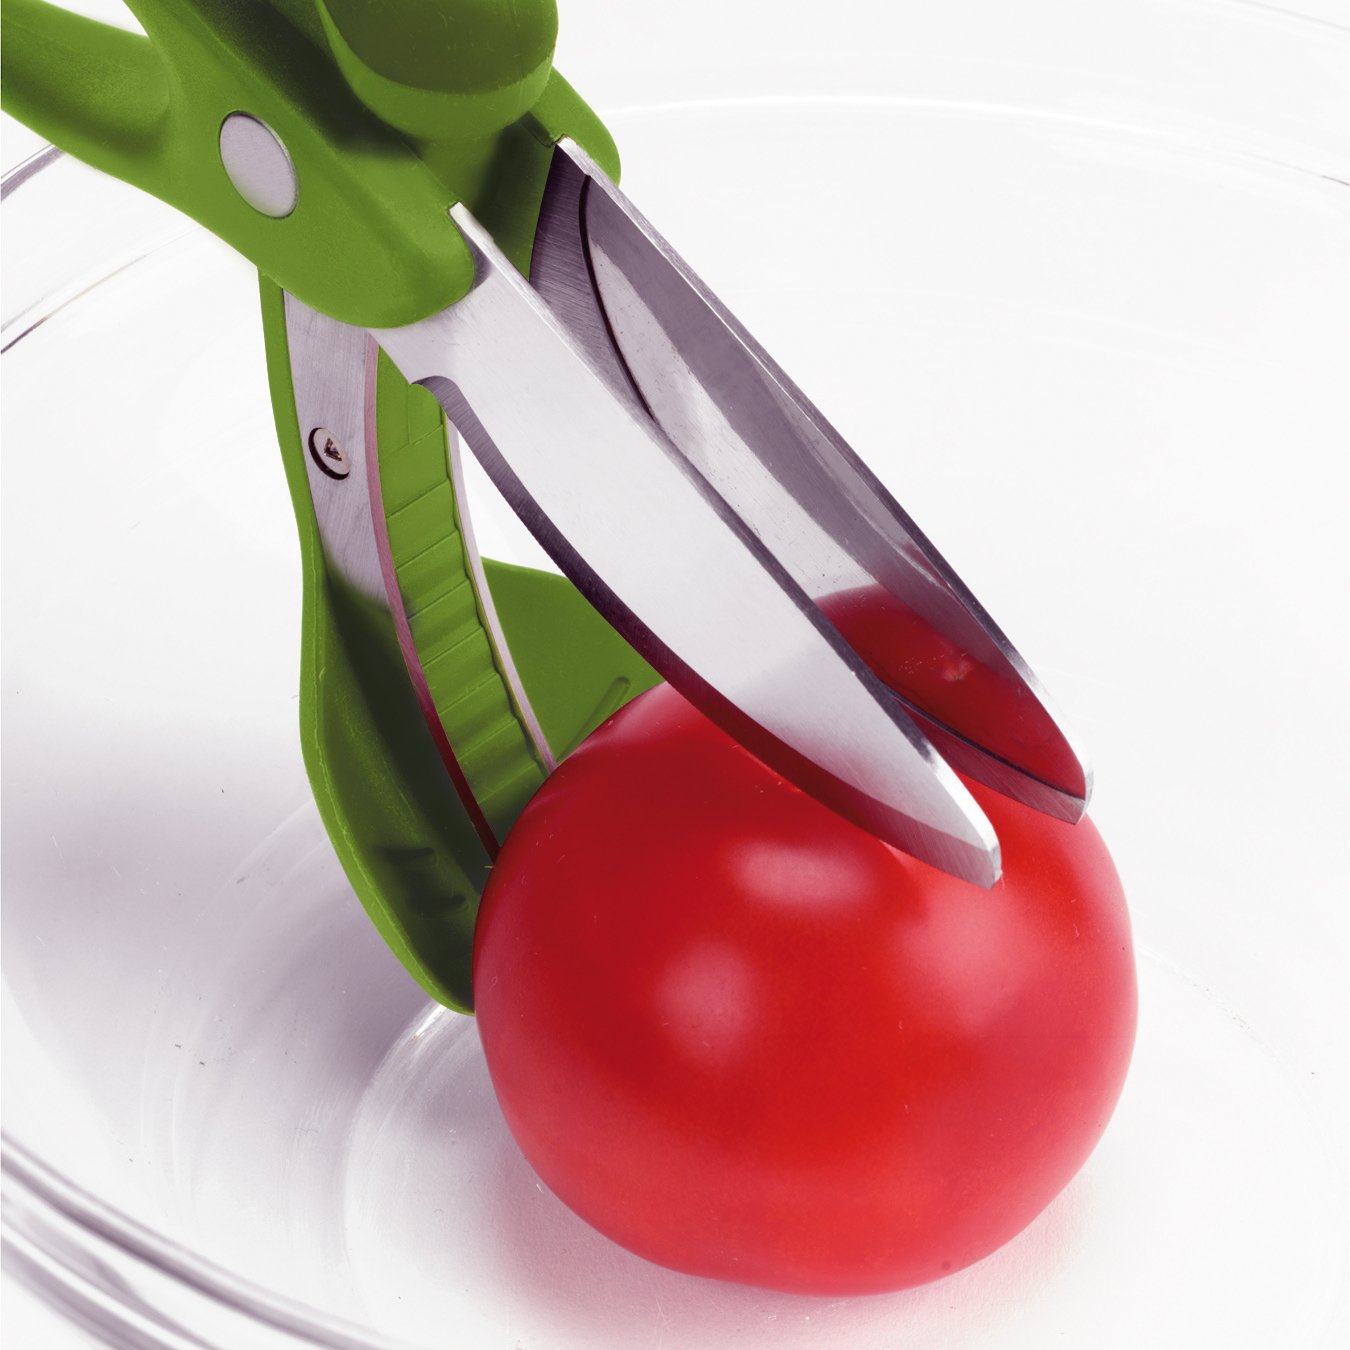 Trudeau Toss and Chop Salad Tongs 09610135